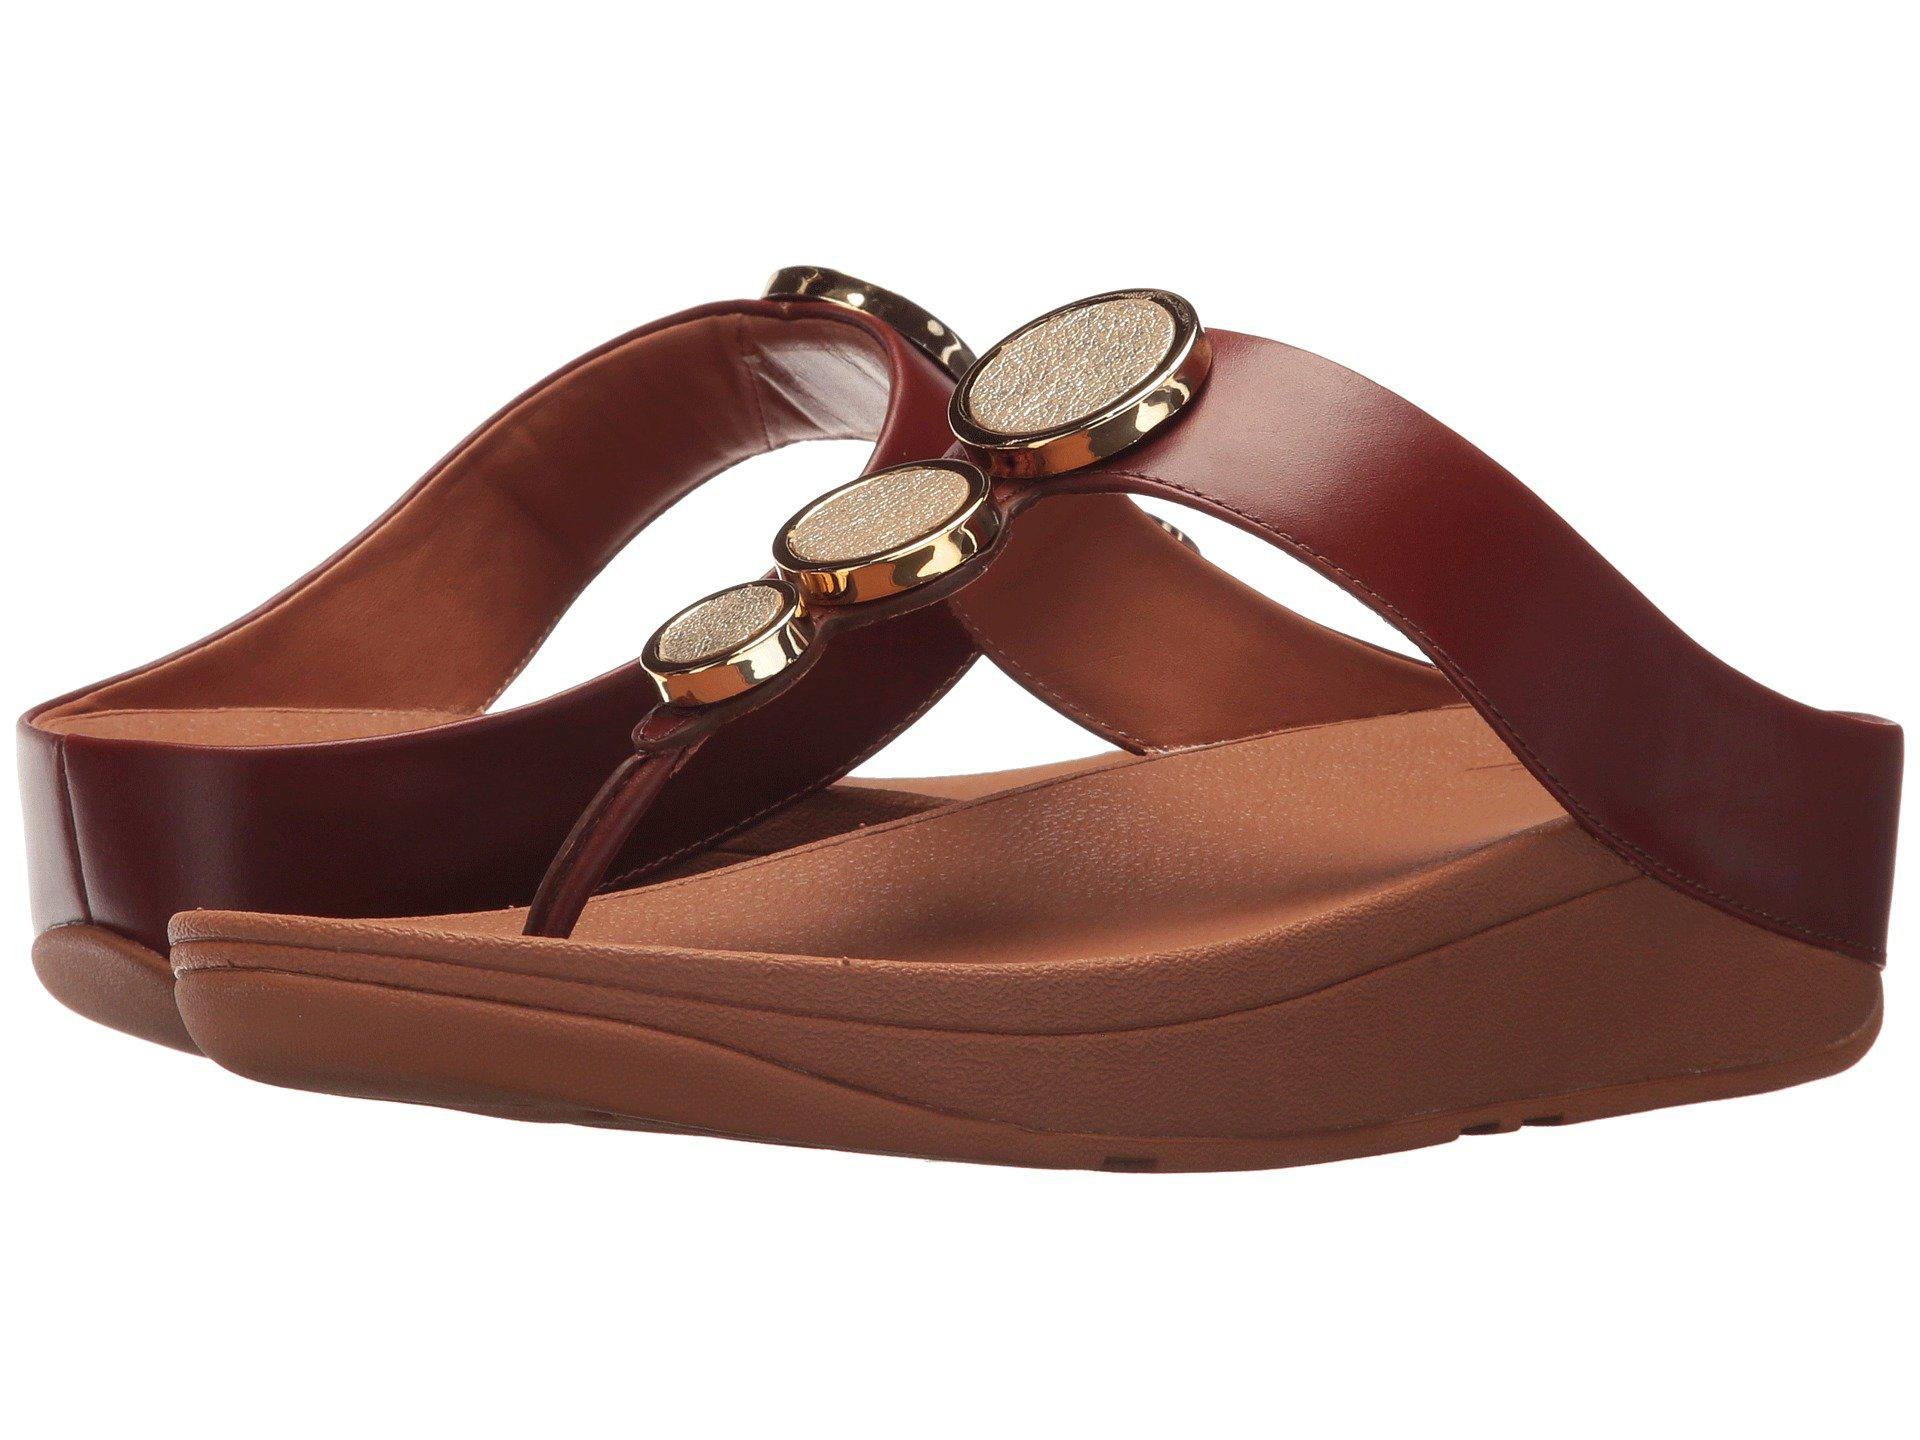 309d6f31b5da Lyst - Fitflop Halo Toe Thong Sandals in Brown